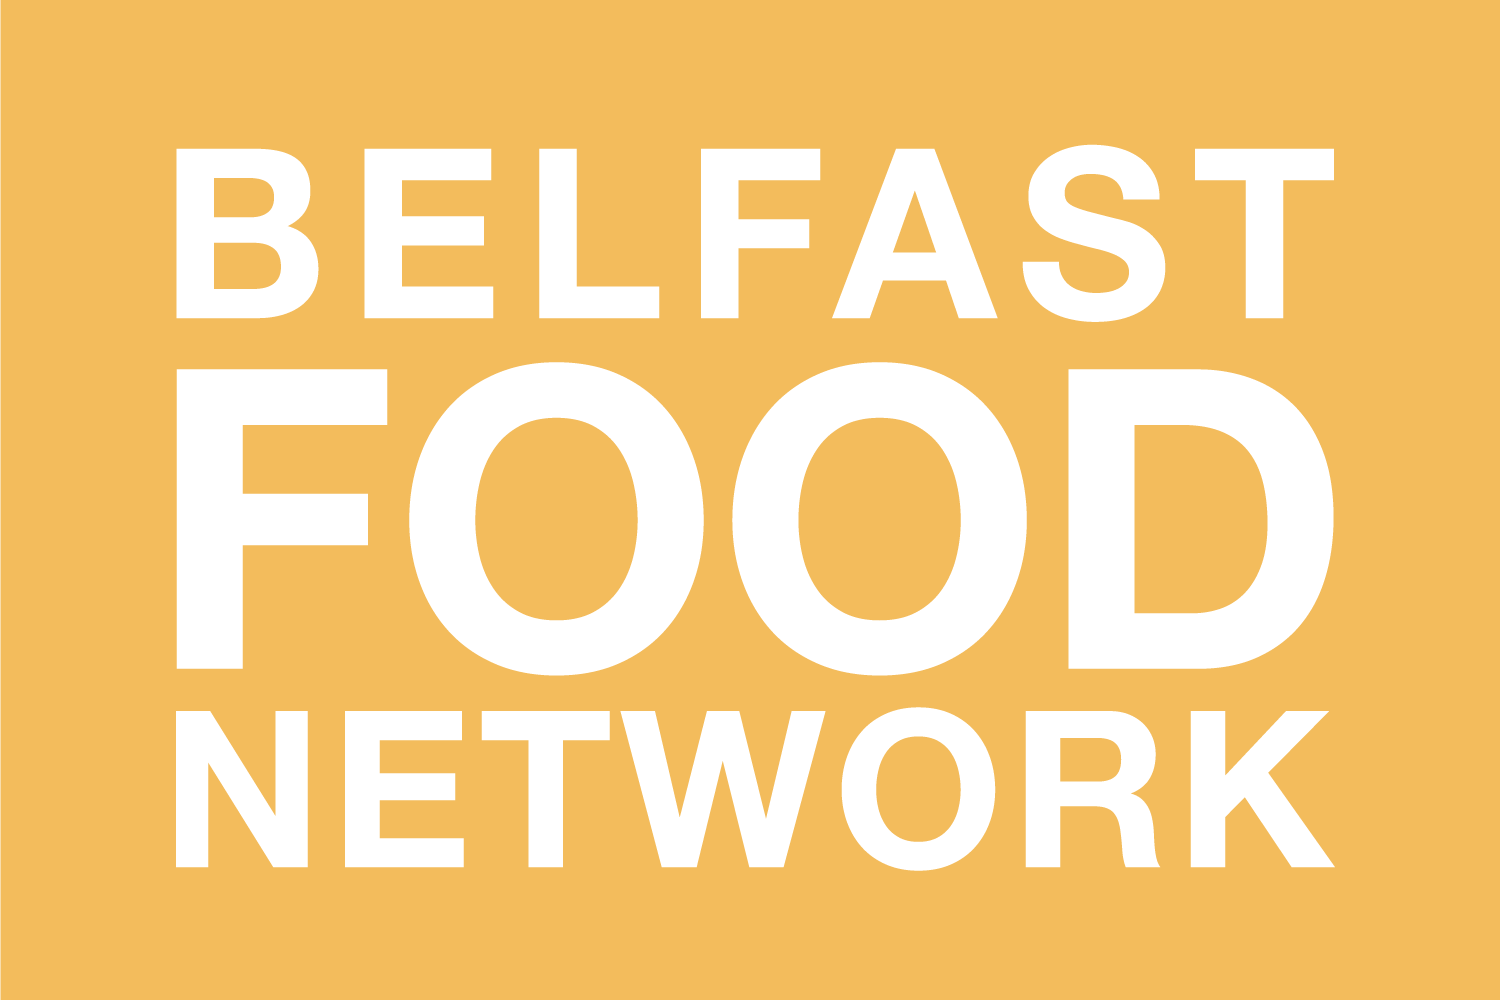 Belfast Food Network - New Website Coming Soon